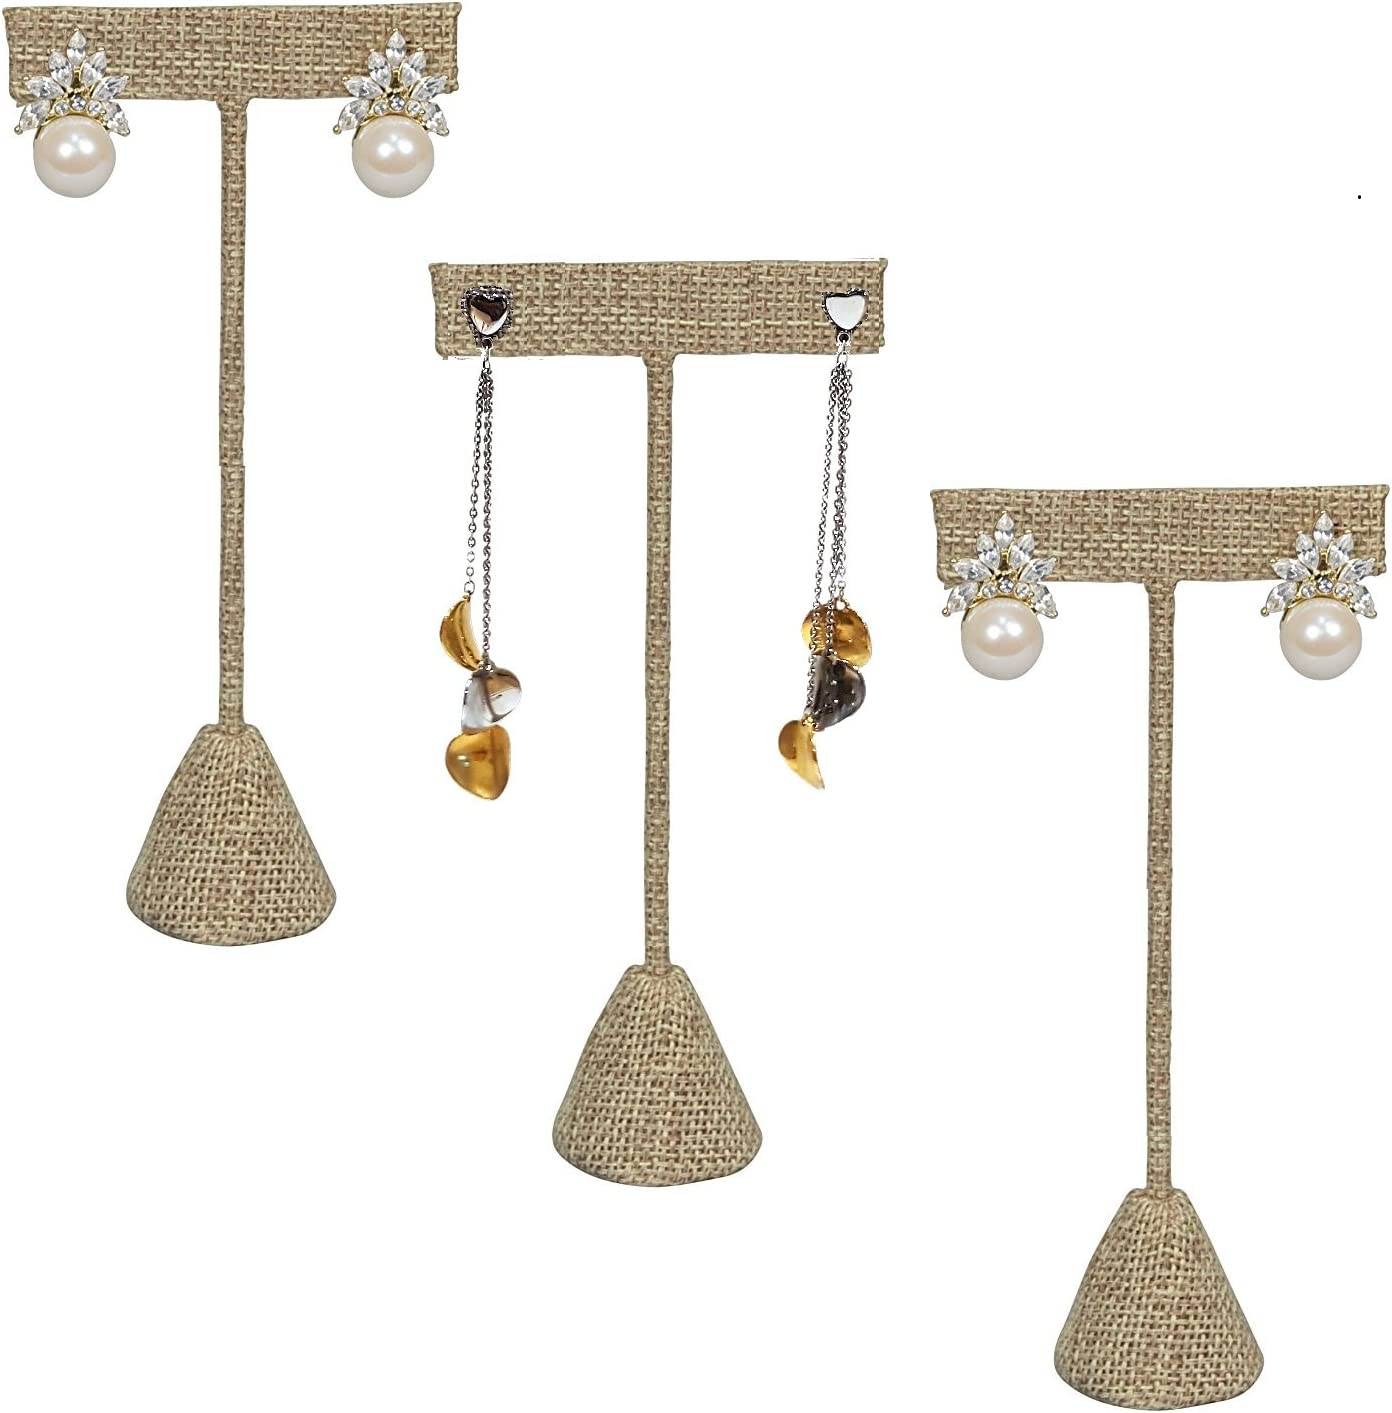 T Shape Holder for Tradeshow or just for Home. Home Business 3 Beige Linen 4.75 H Earring T Stand Display